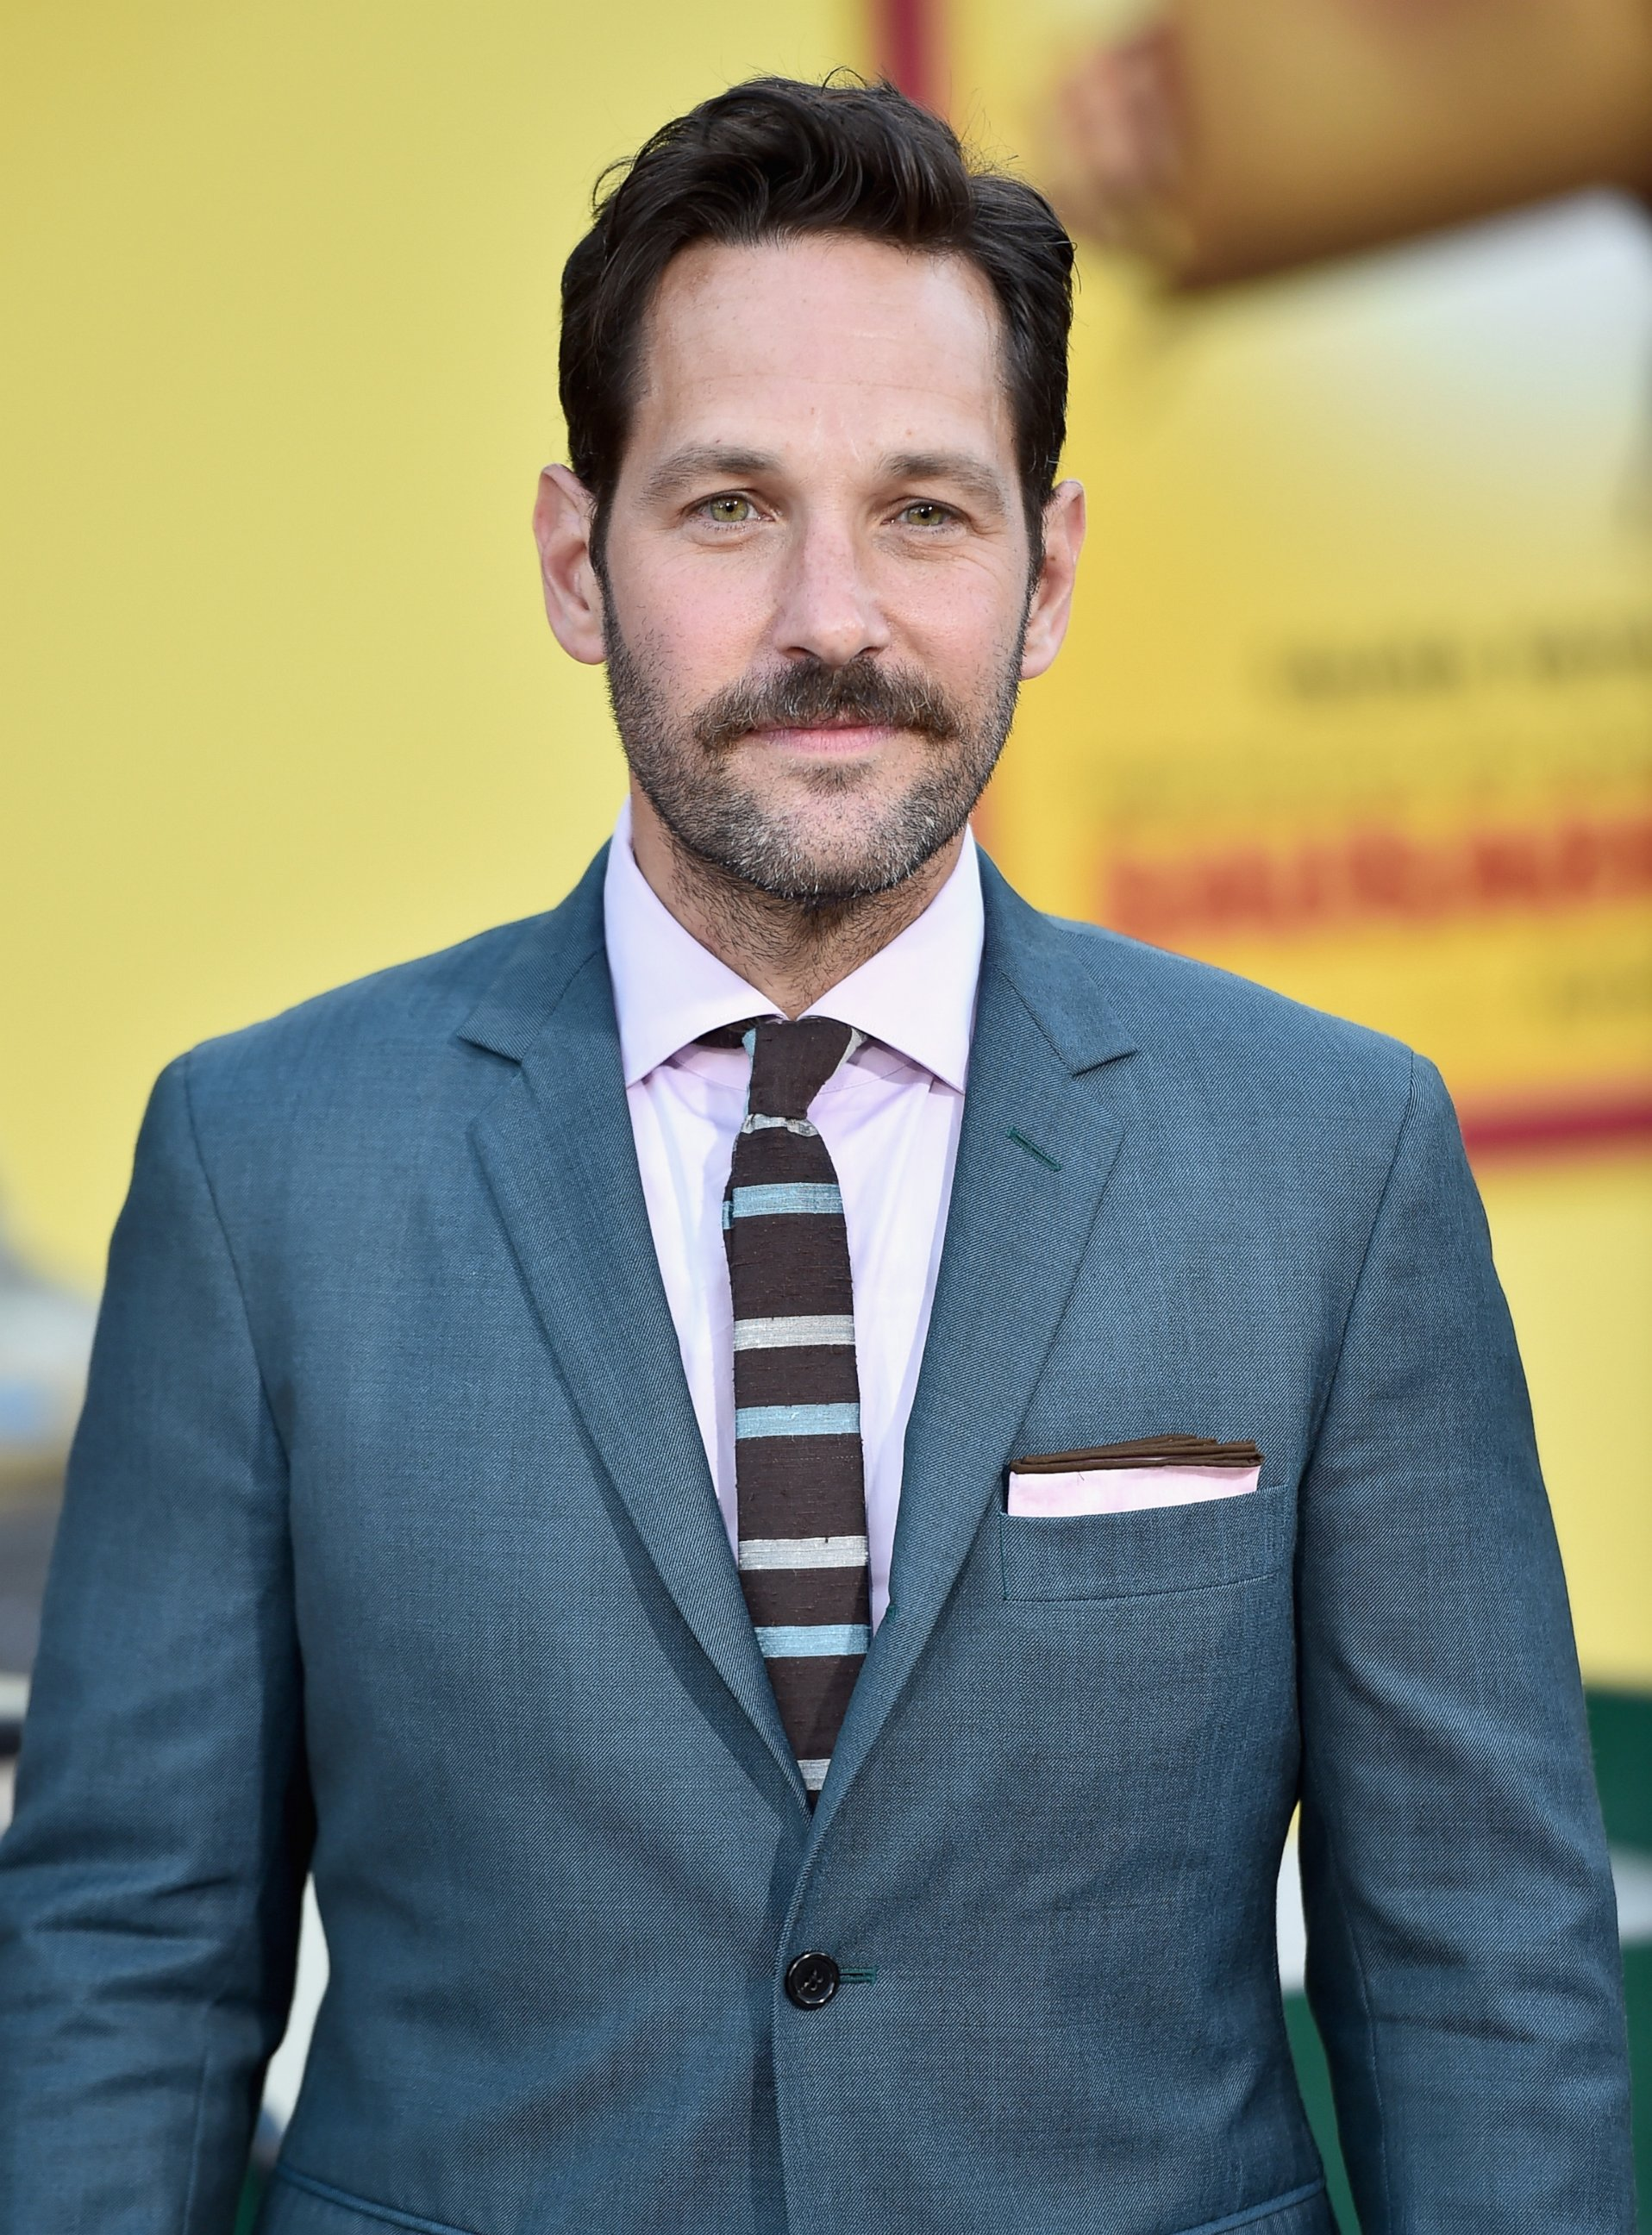 paul rudd videos at abc news video archive at abcnews